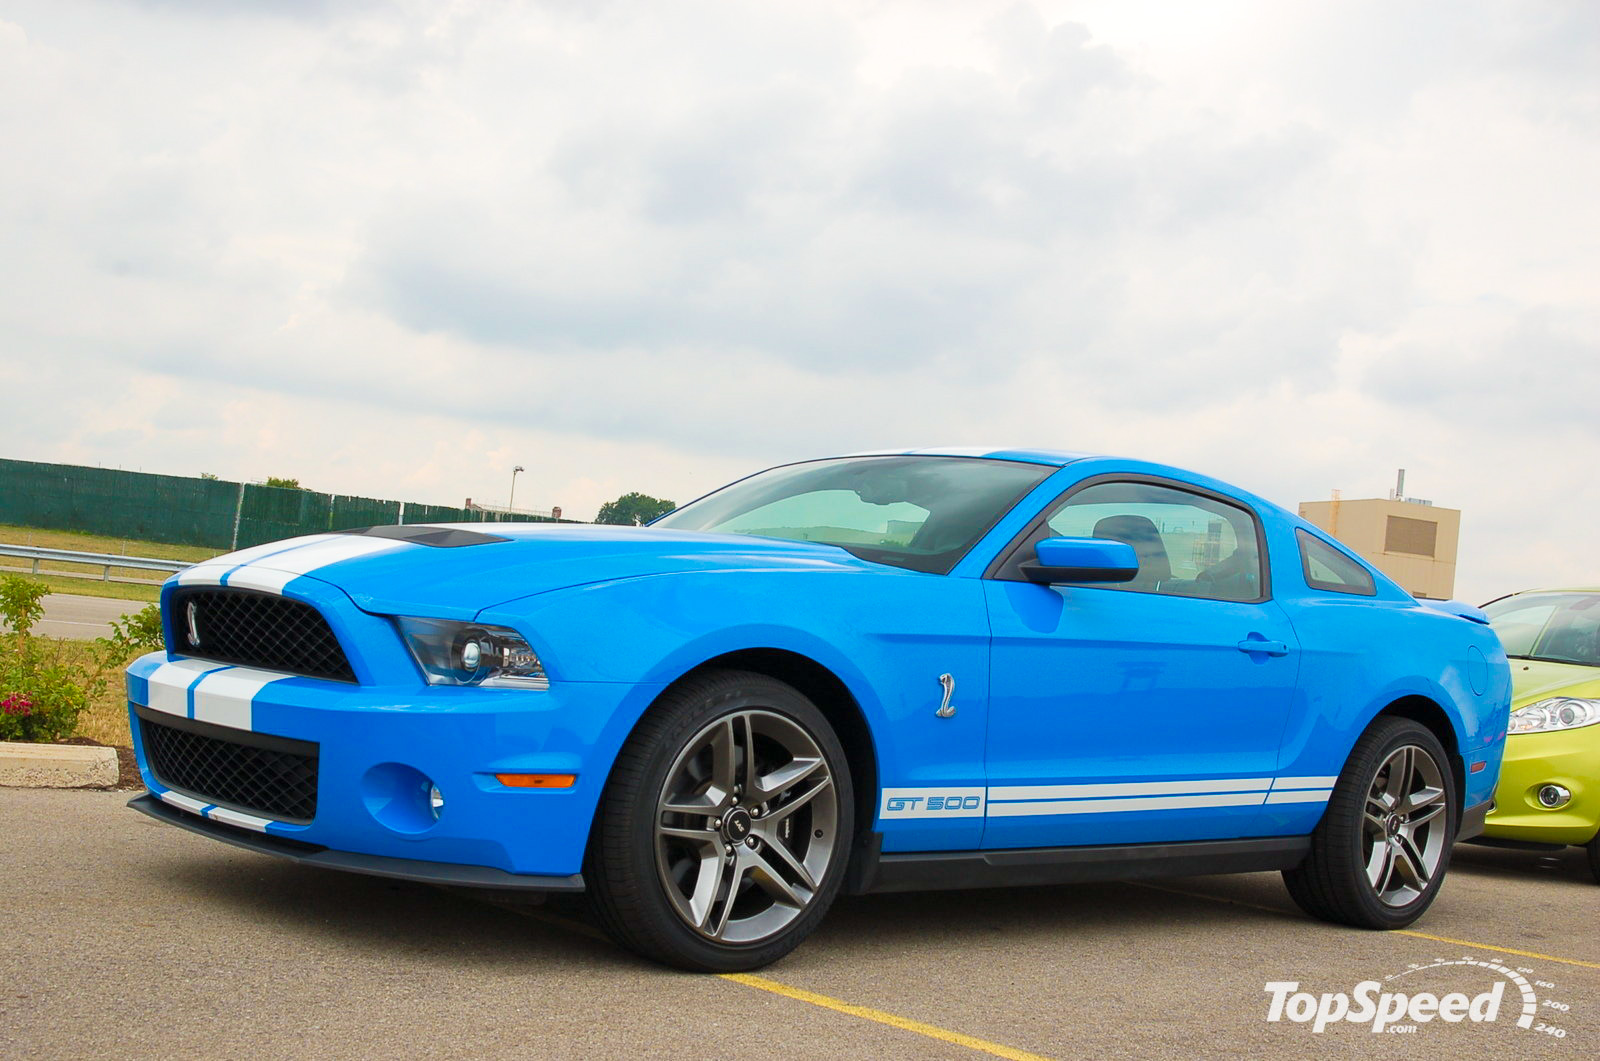 Ford Mustang Outsells Chevy Camaro In 2009 News - Top Speed